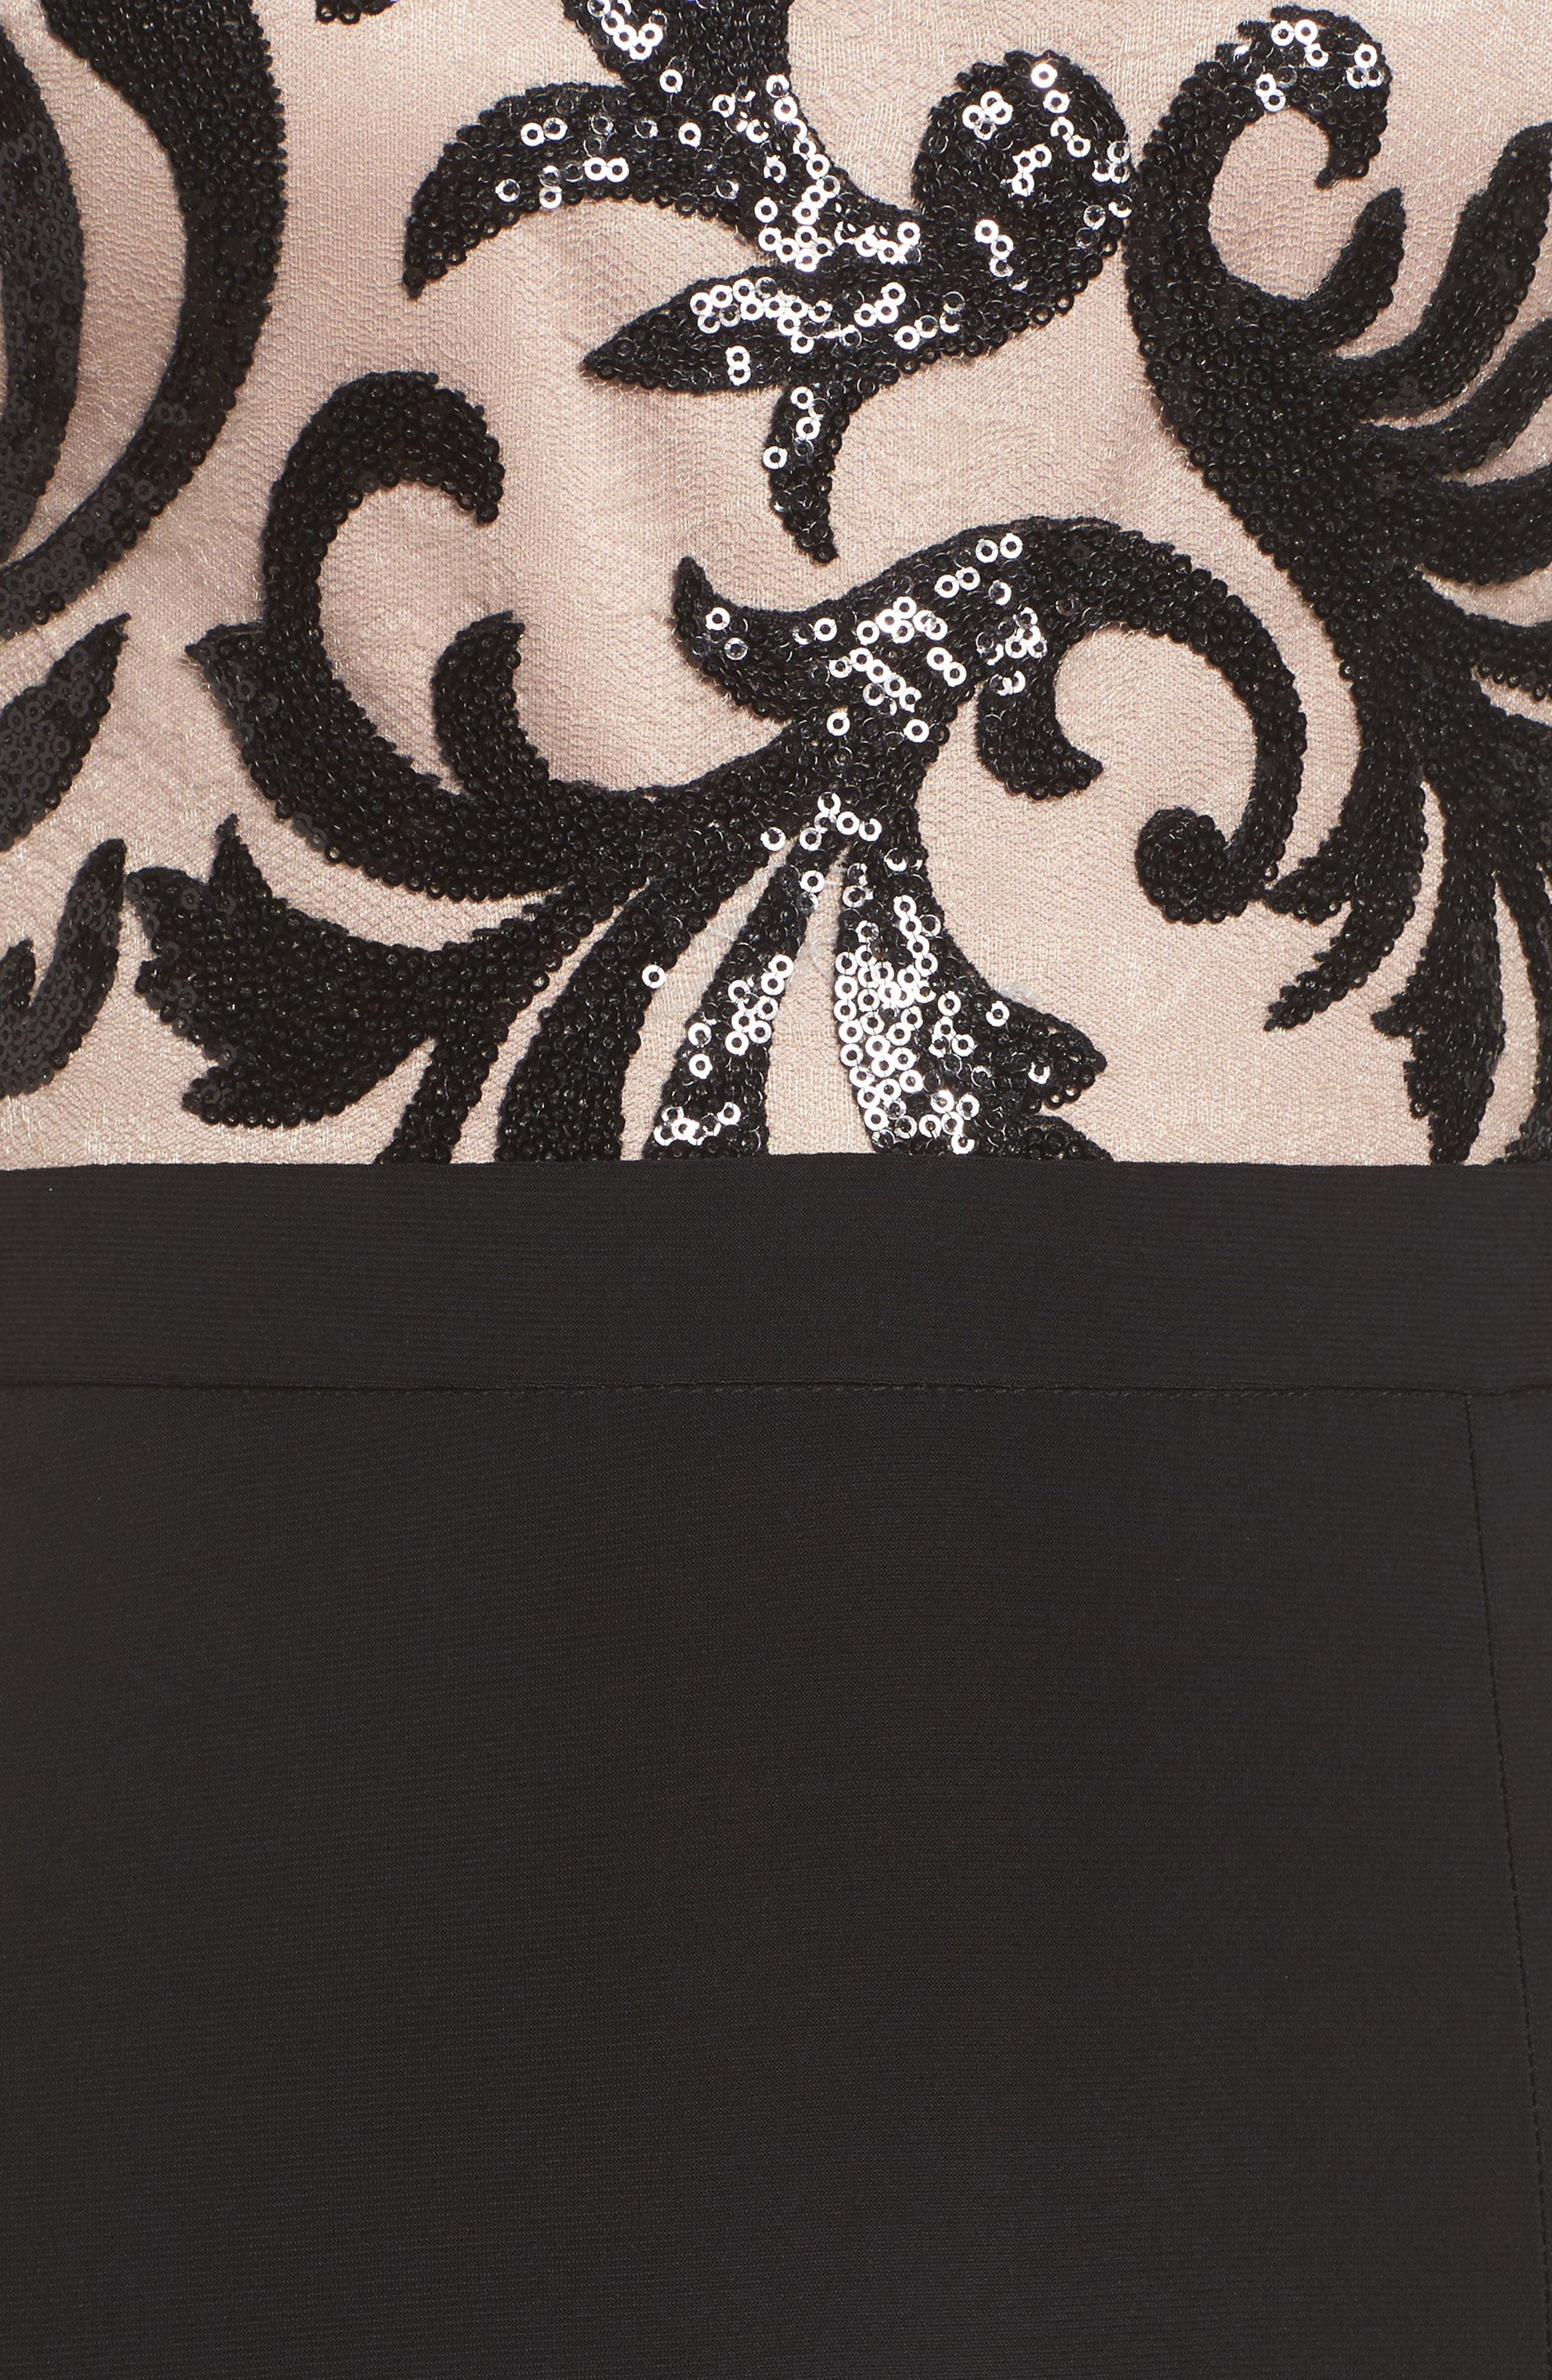 Sequin Embroidered Stretch Knit Gown,                             Alternate thumbnail 5, color,                             BLACK / NUDE